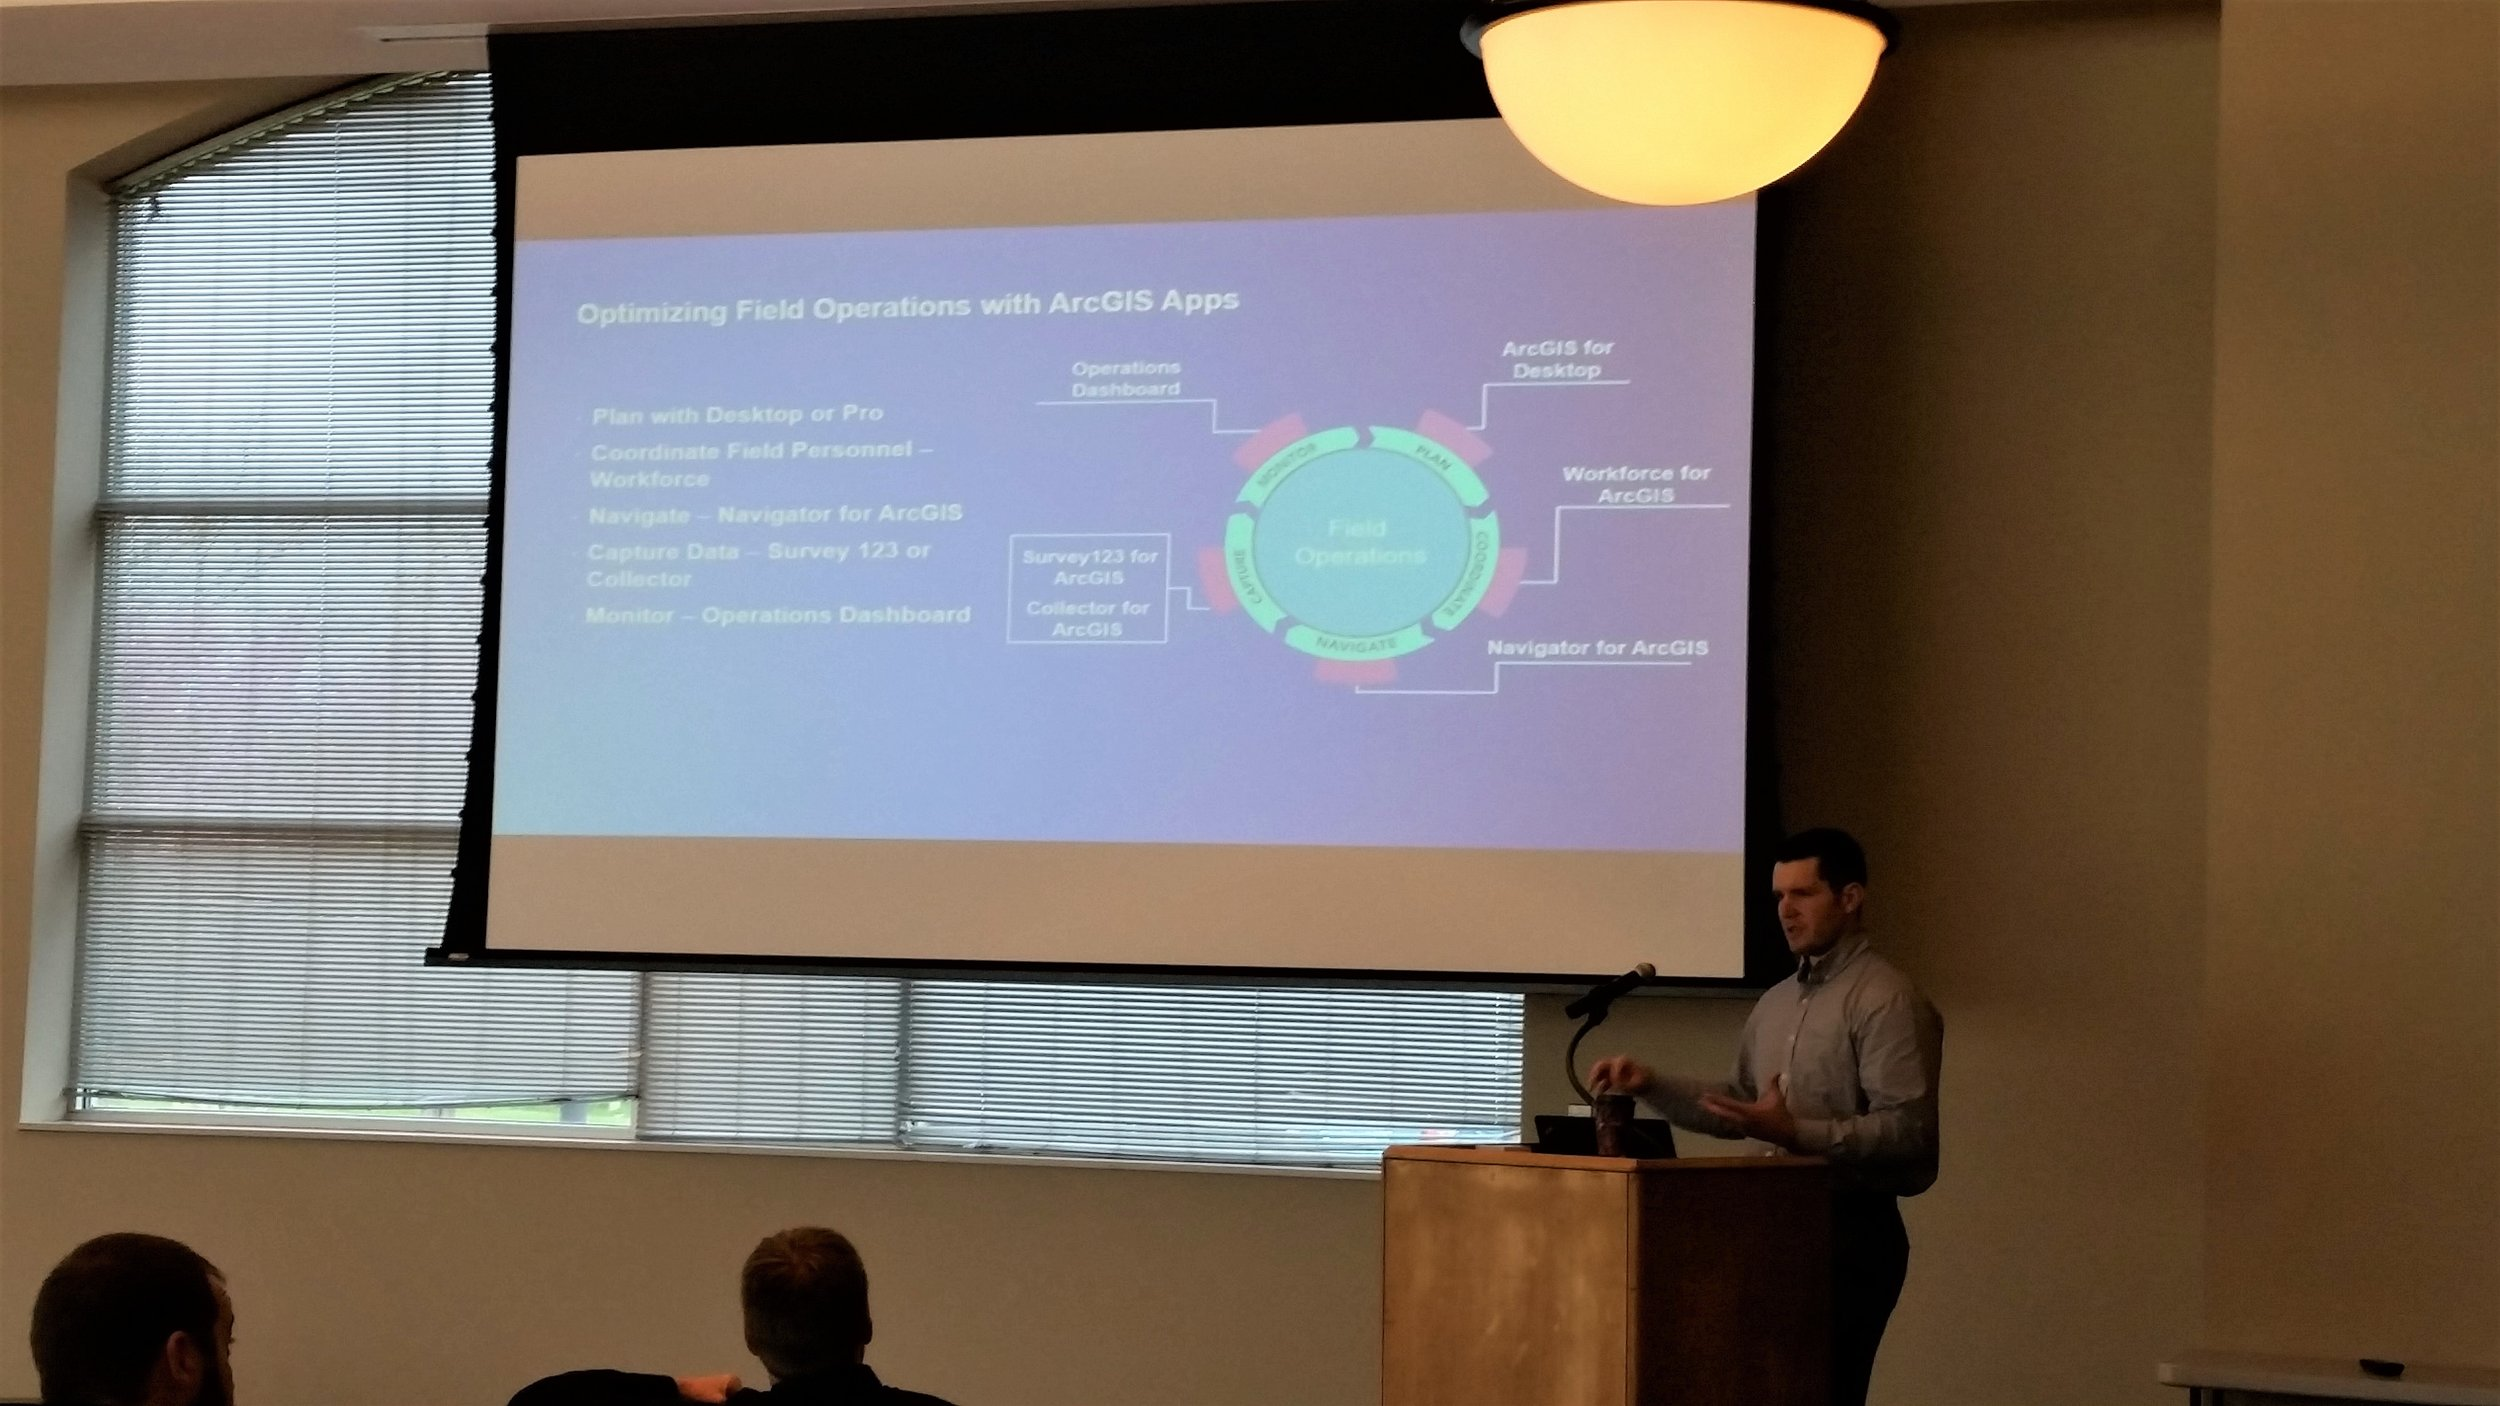 Jordan Miller with Esri discussing how organizations can optimize field operations with ArcGIS Apps.